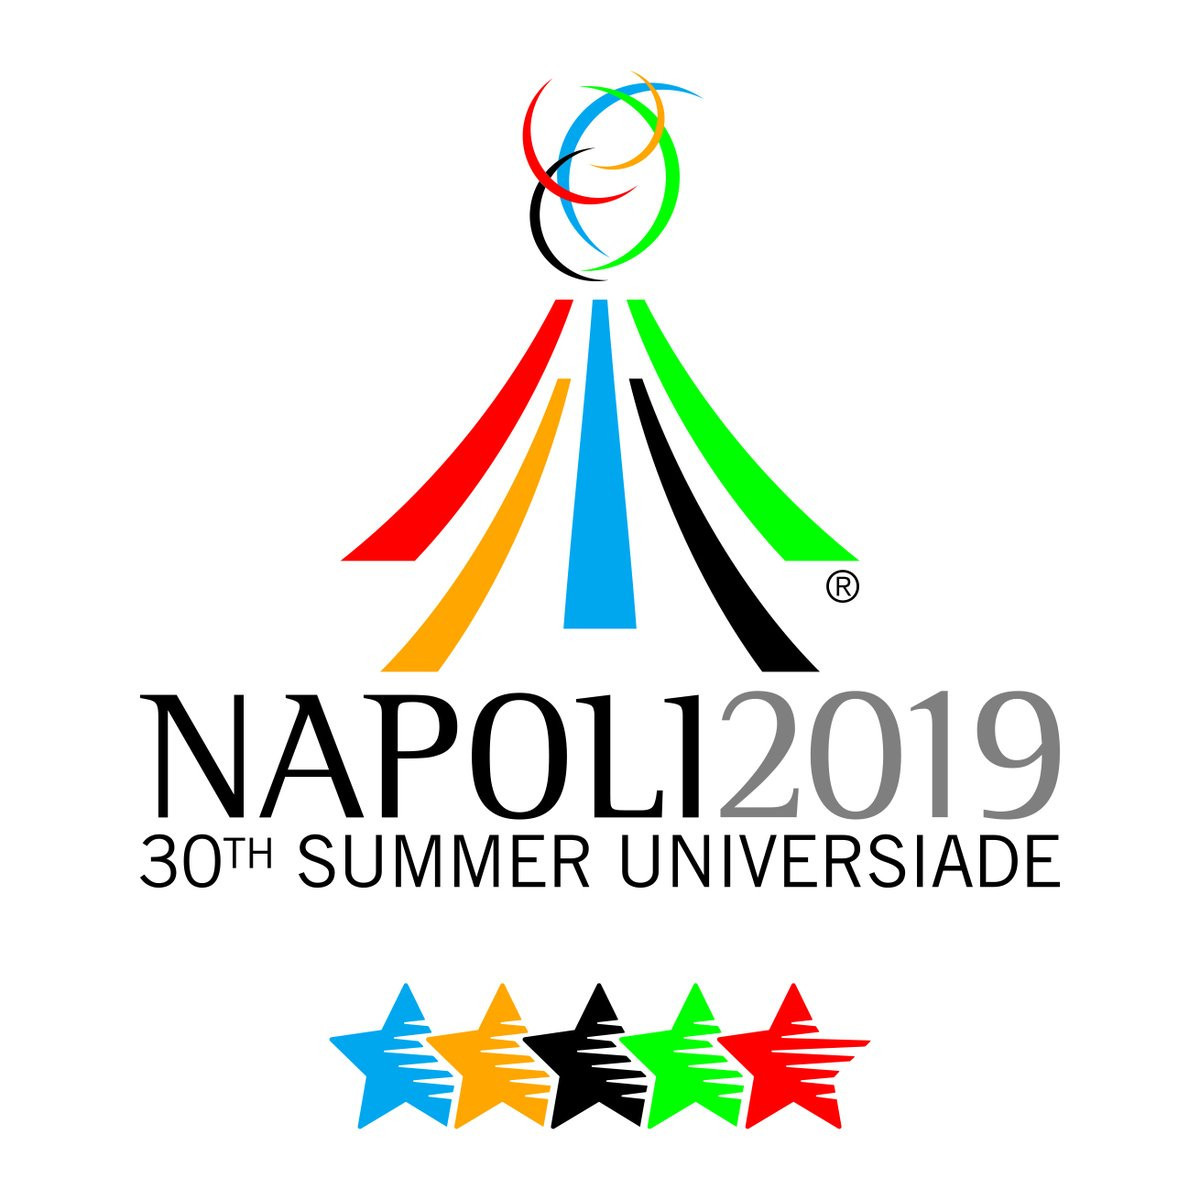 The Napoli 2019 Summer Universiade and Italian sport federations have reached an agreement to move on to the operative phase of the sporting event ©FISU